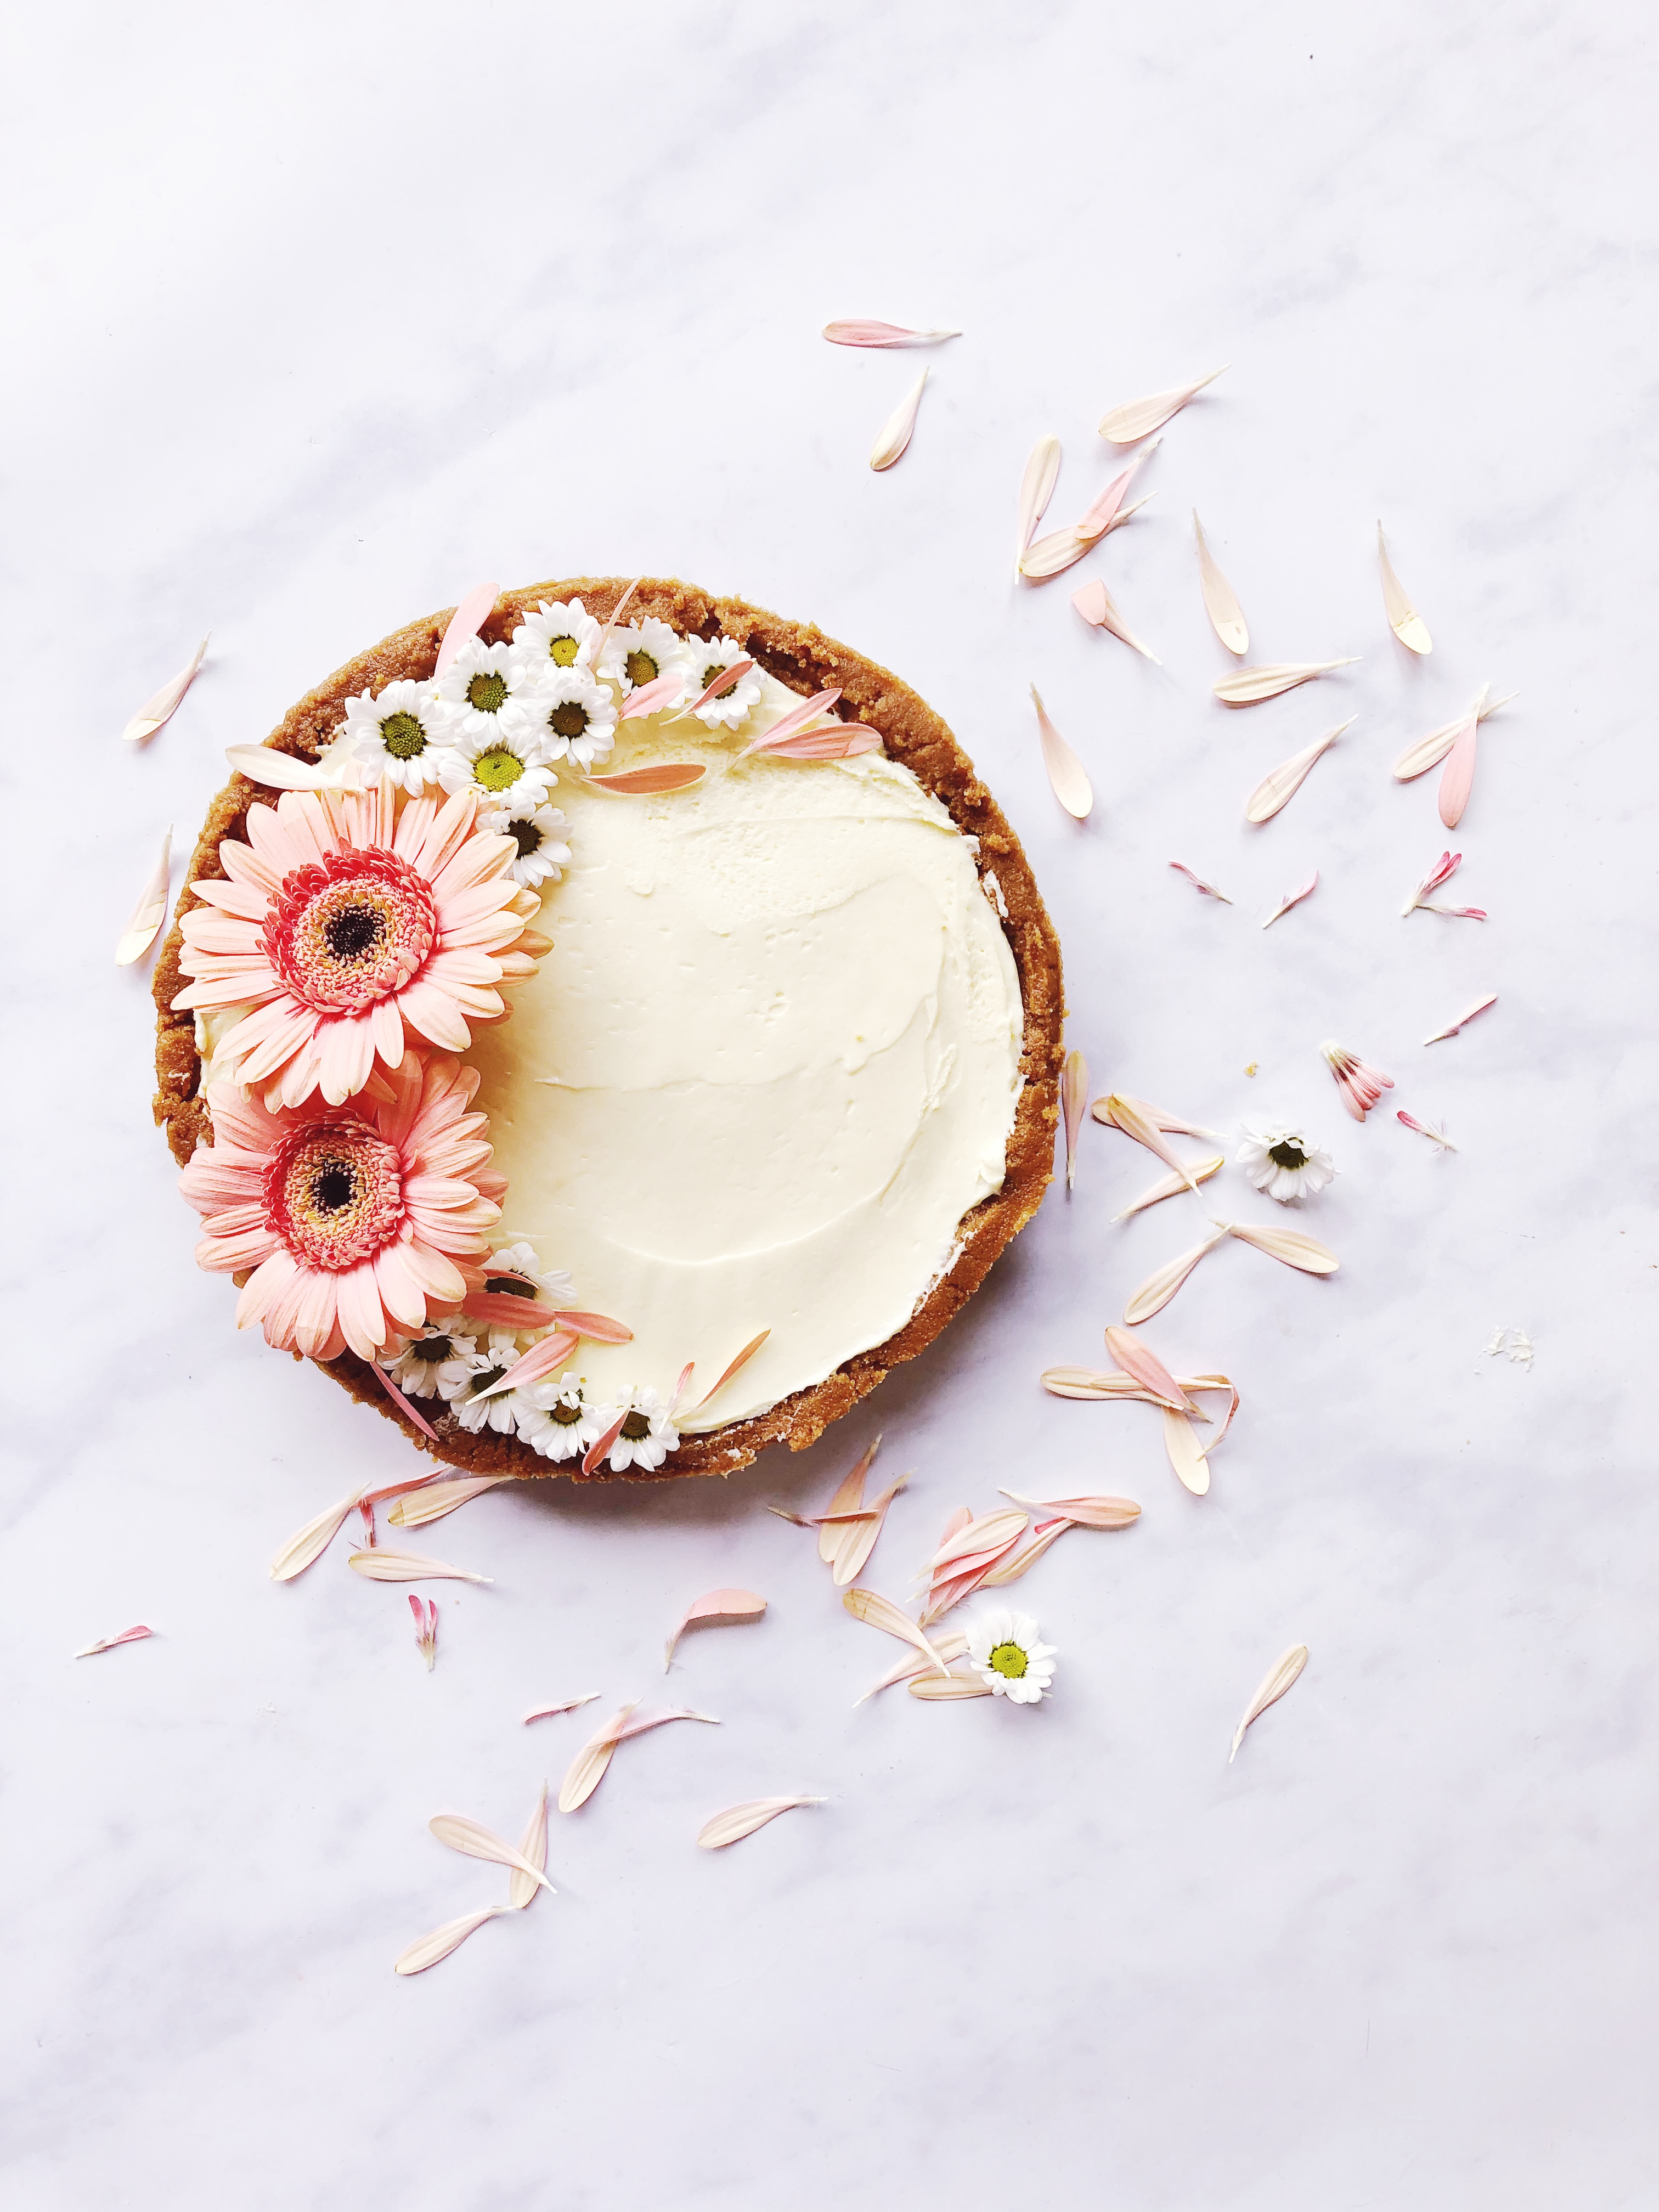 white chocolate and ginger torte with flowers